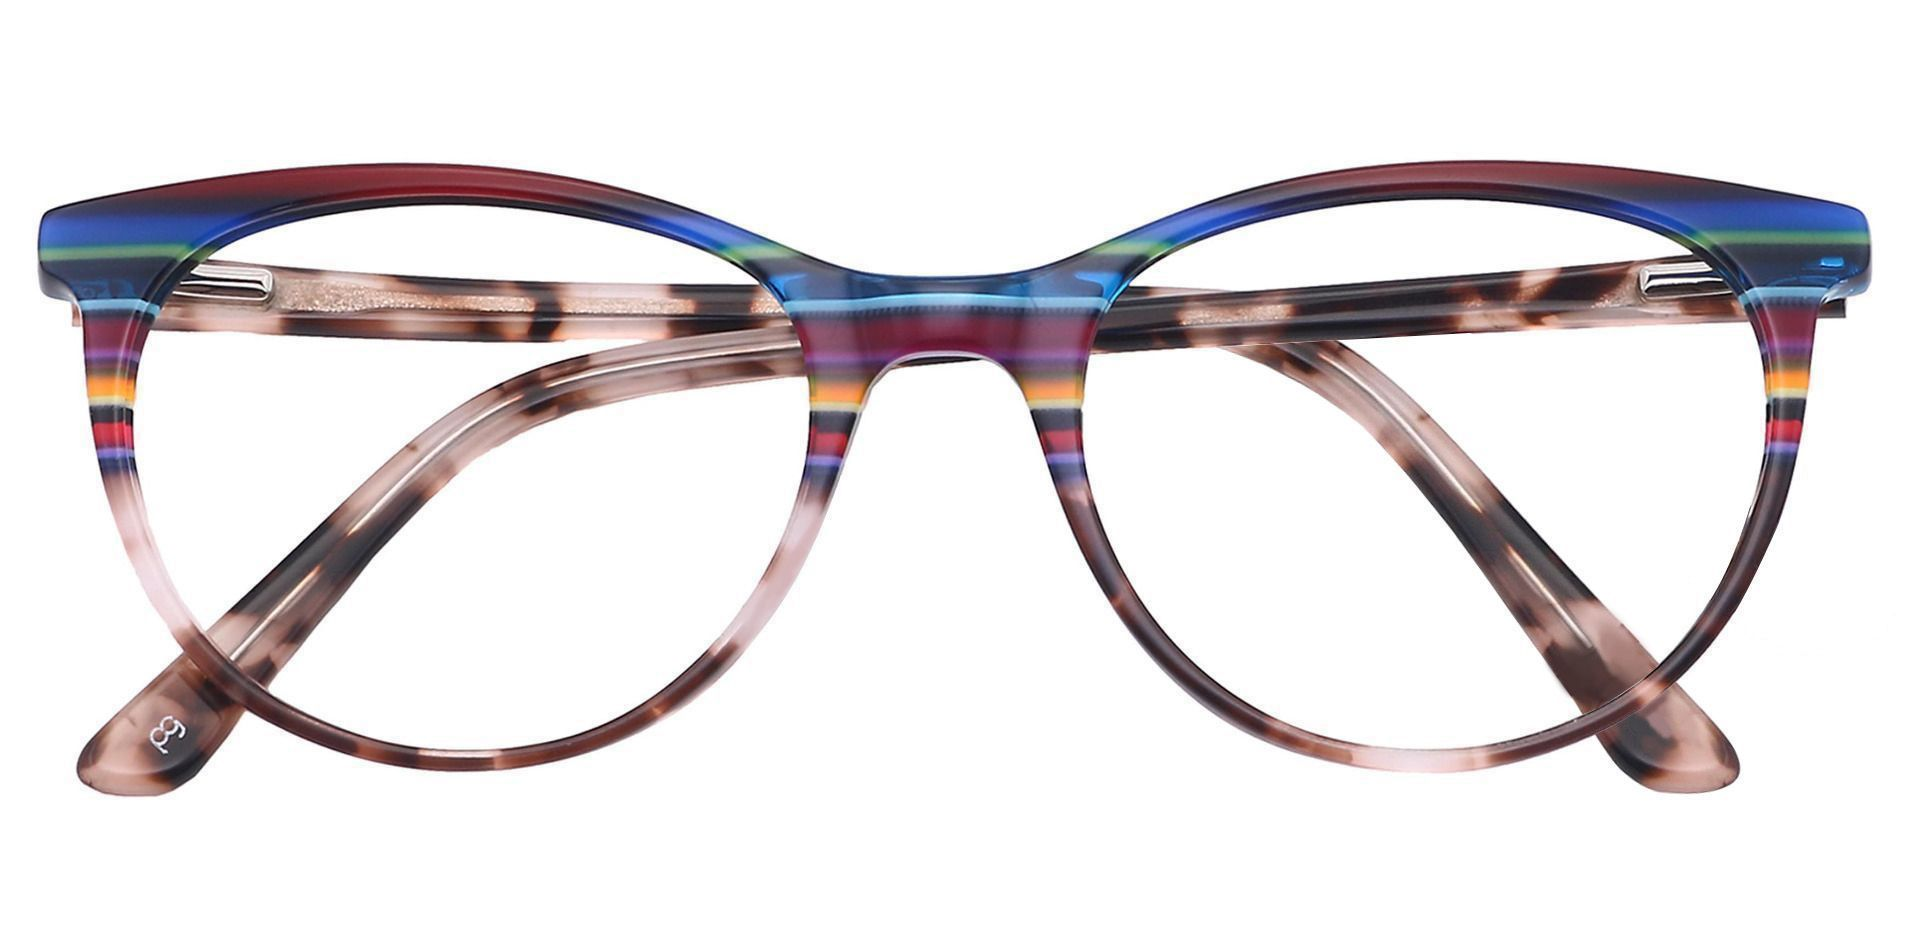 Patagonia Oval Prescription Glasses - Blue